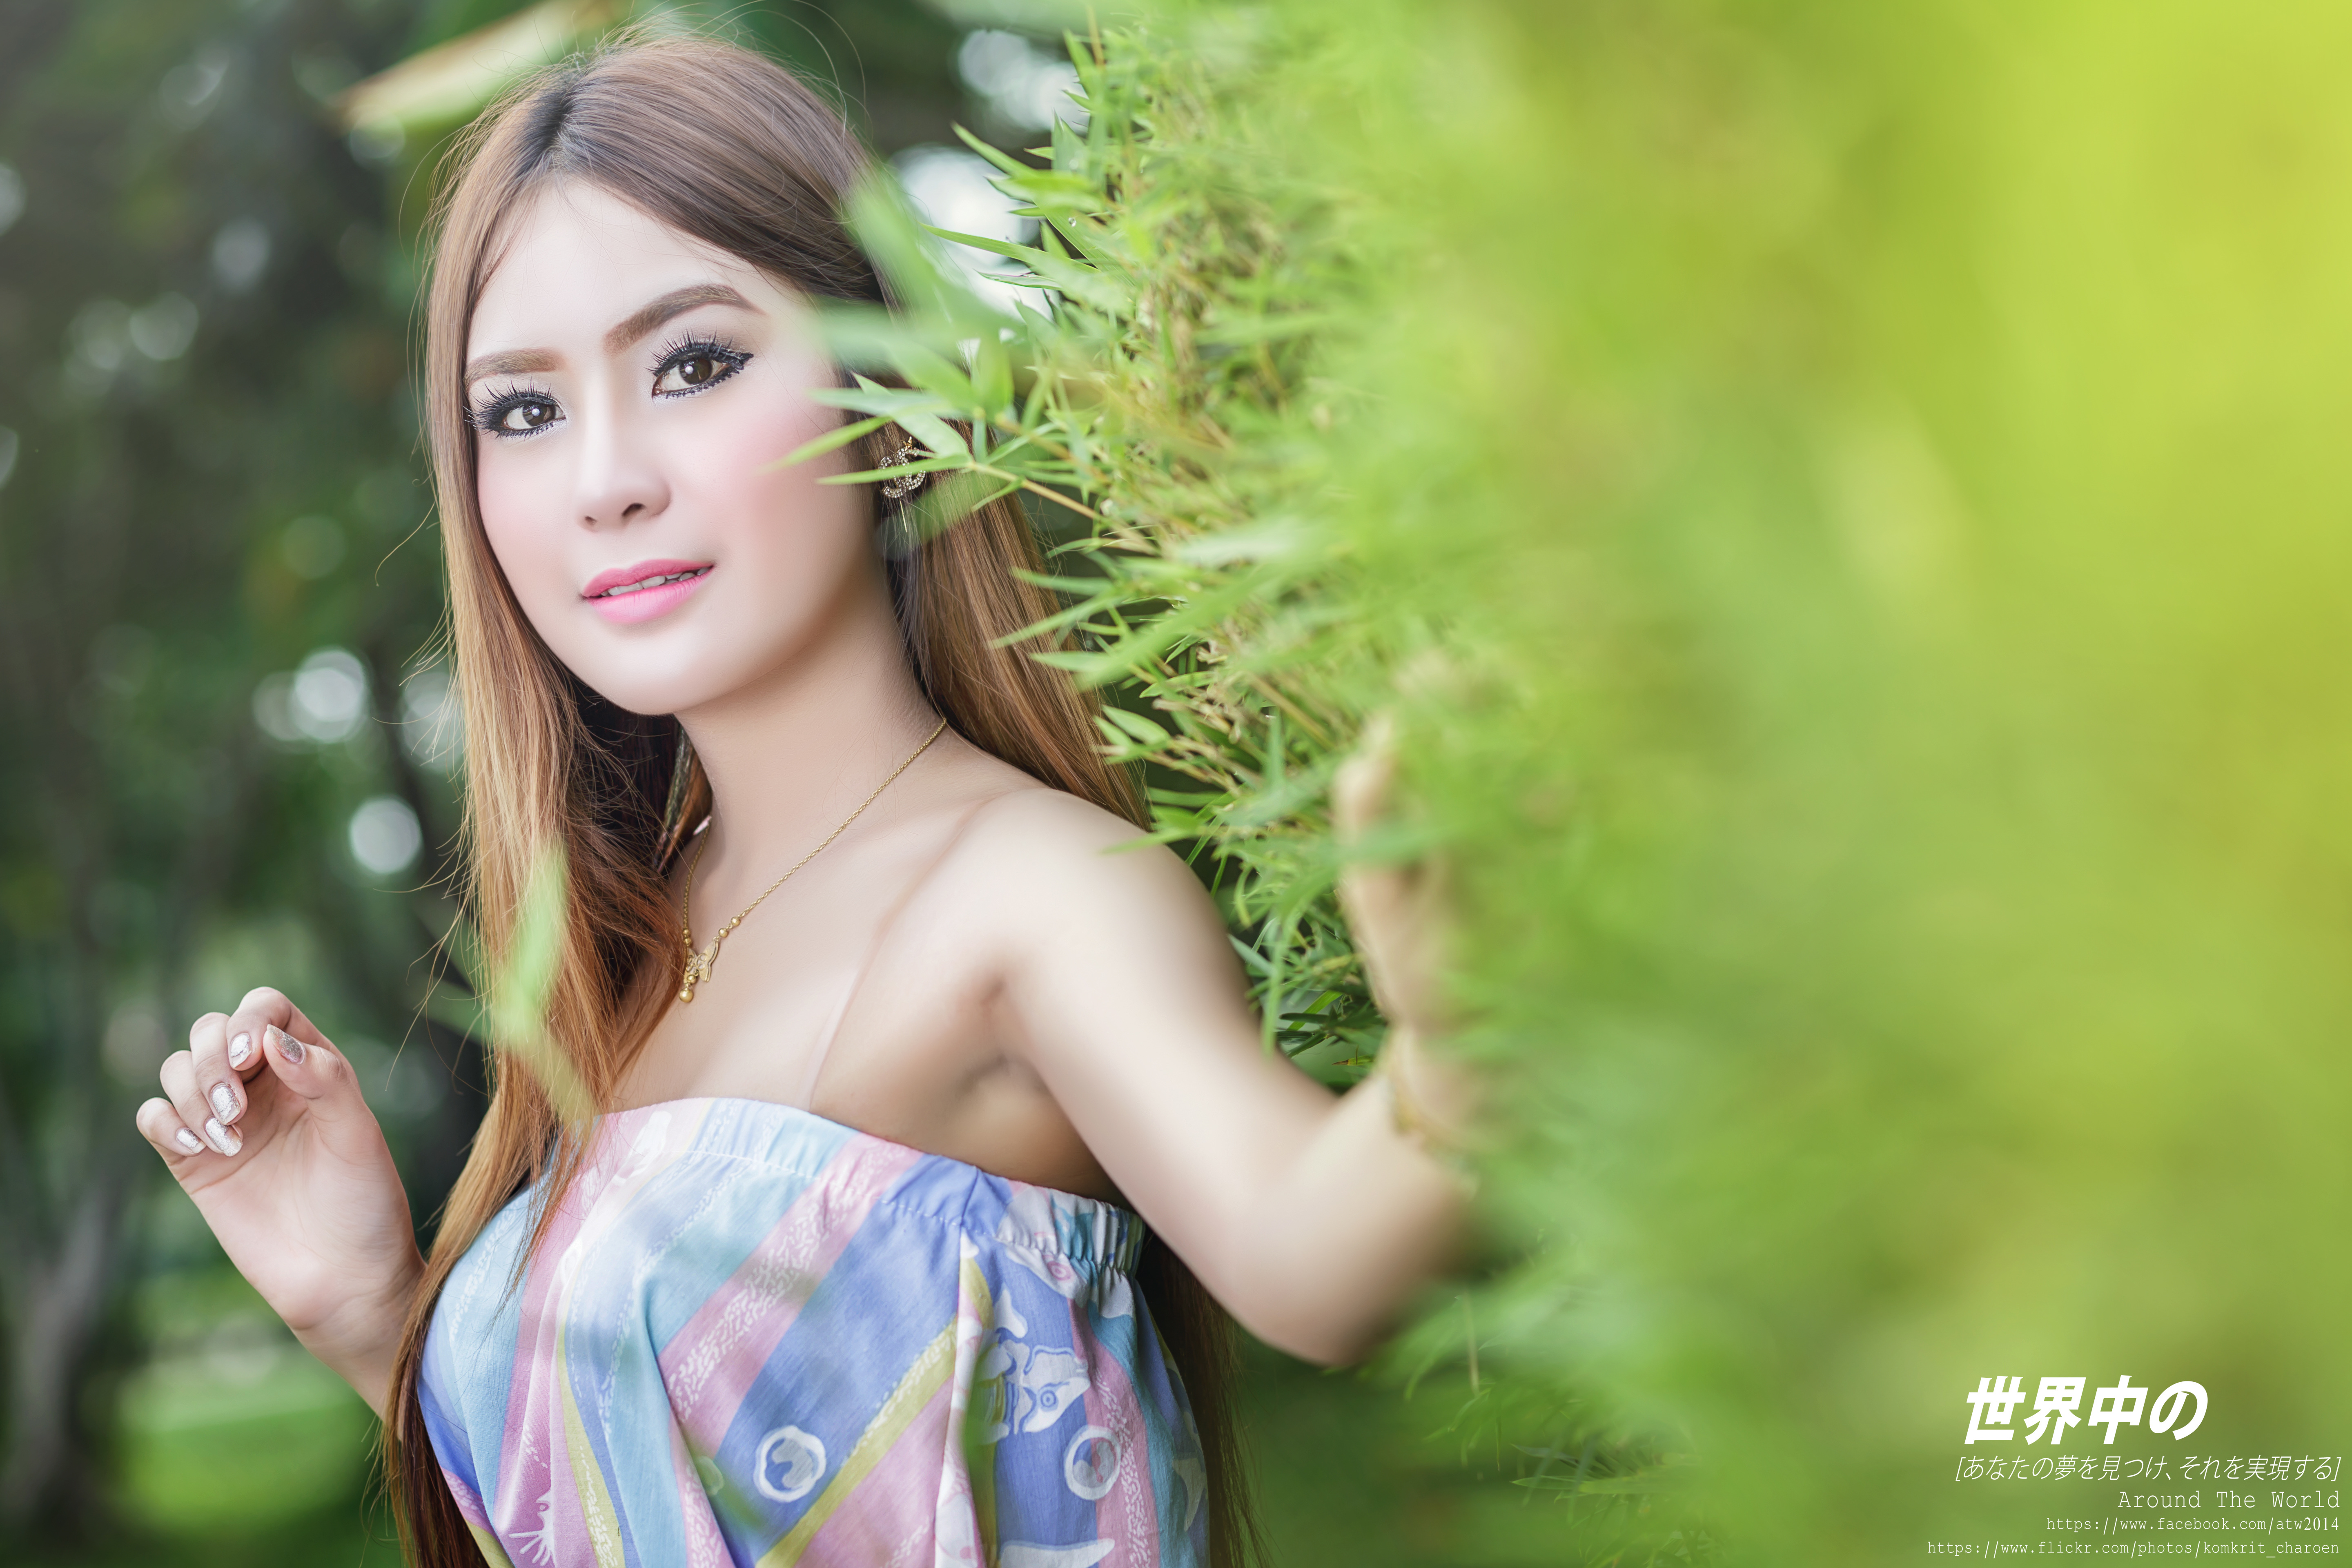 Pictures Brown haired blurred background female Asian Glance Bokeh Girls young woman Asiatic Staring